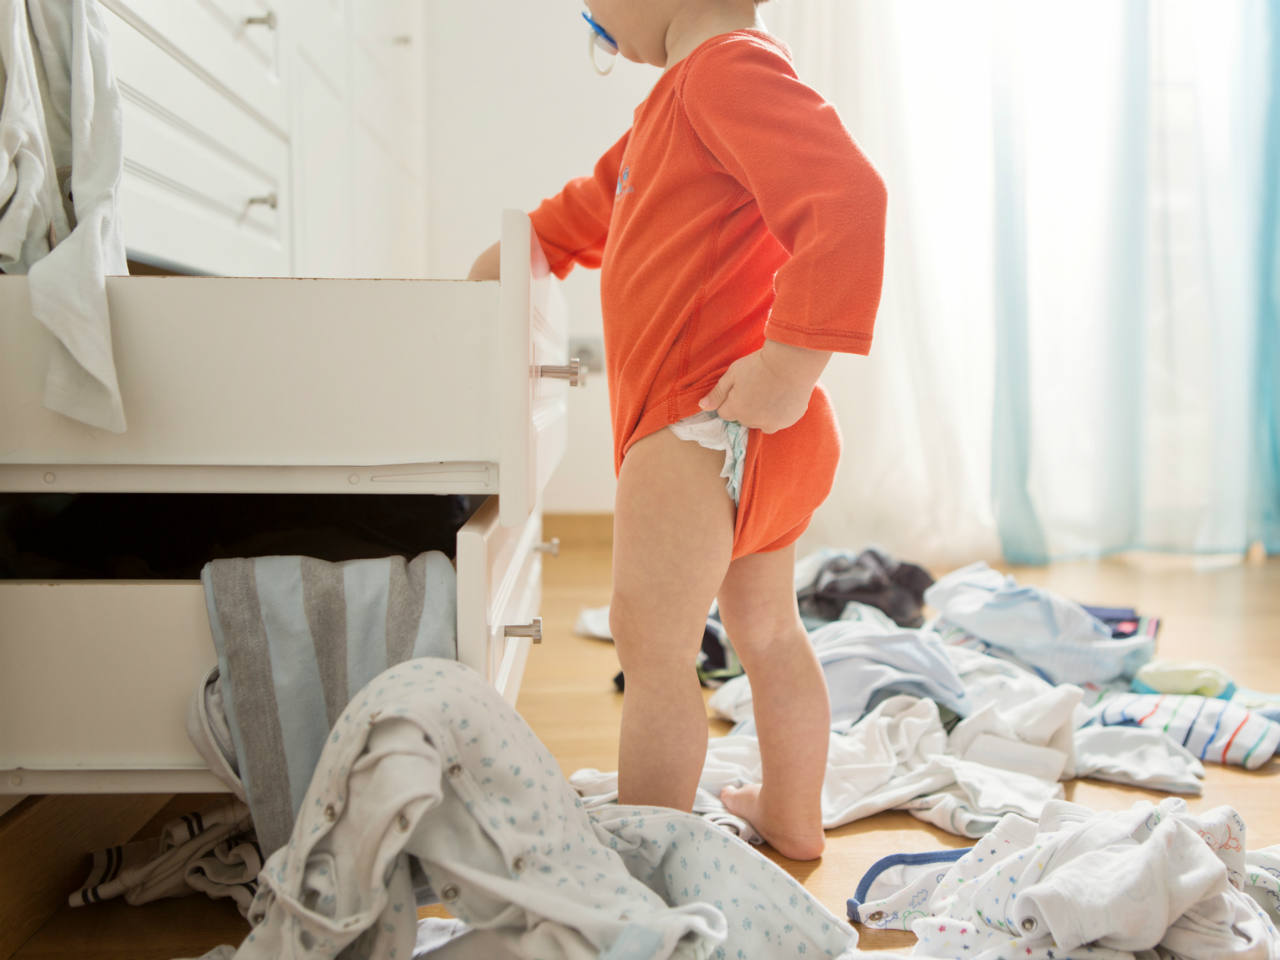 A toddler standing next a drawer and emptying out all the clothes